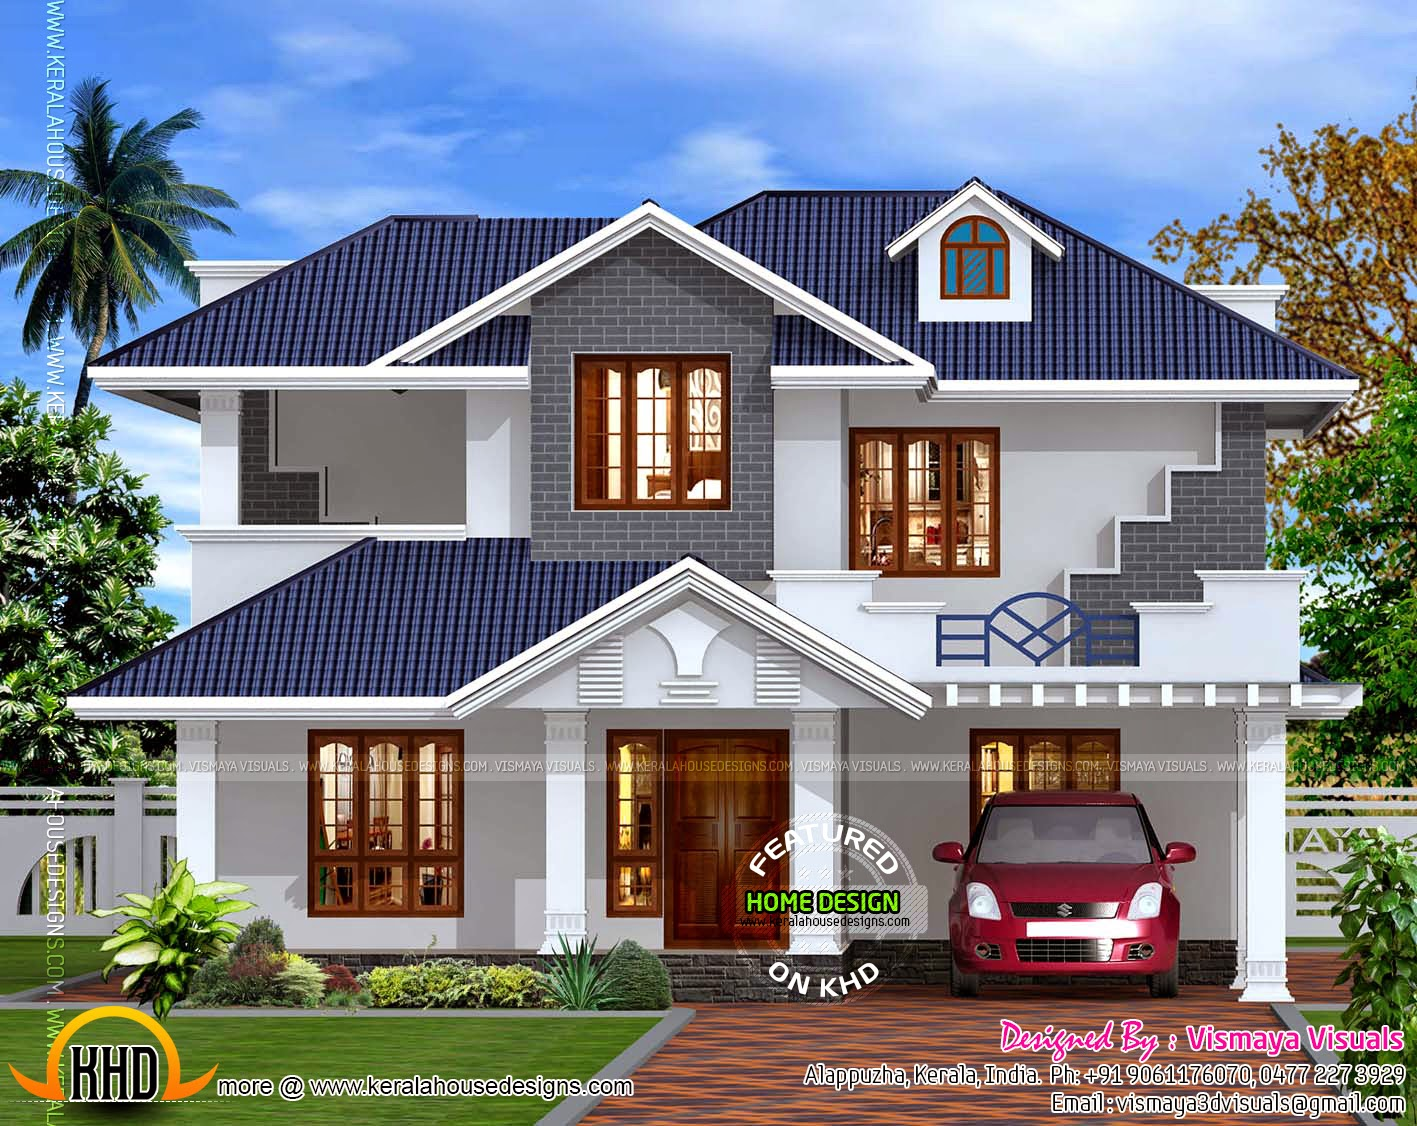 Kerala style villa exterior kerala home design and floor plans - Kerala exterior model homes ...